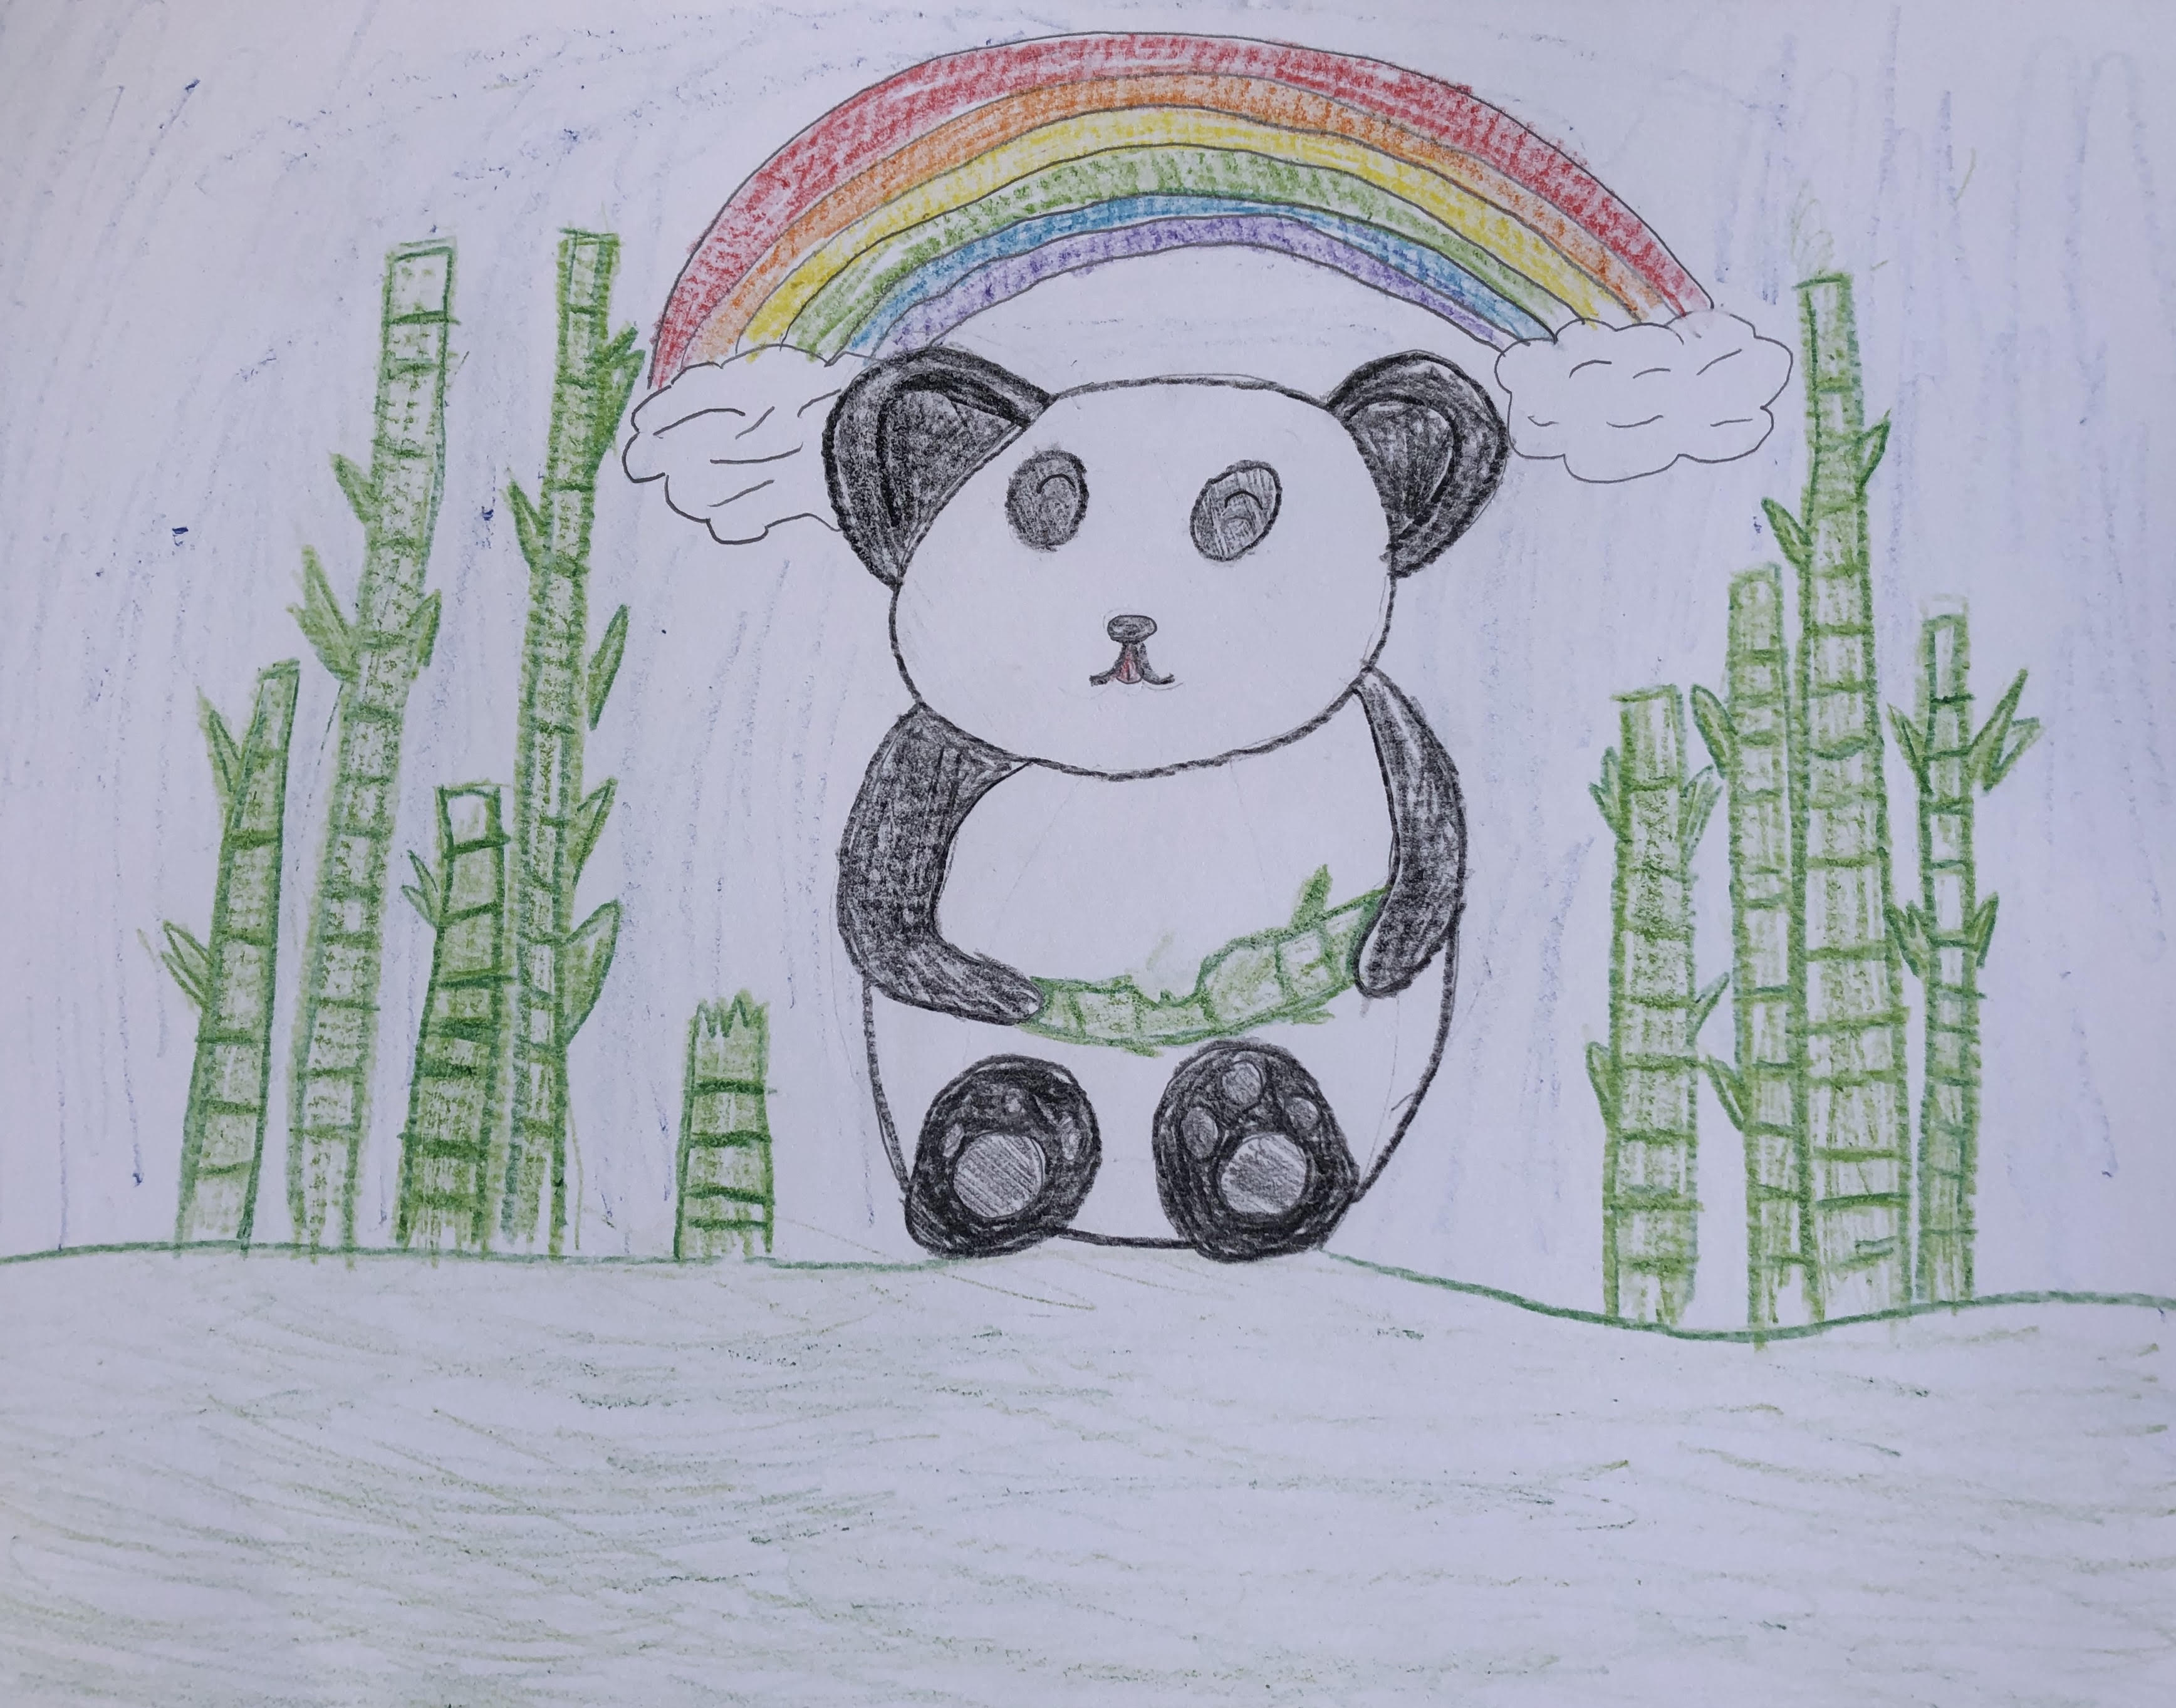 Under The Rainbow by Chloe Cabalse